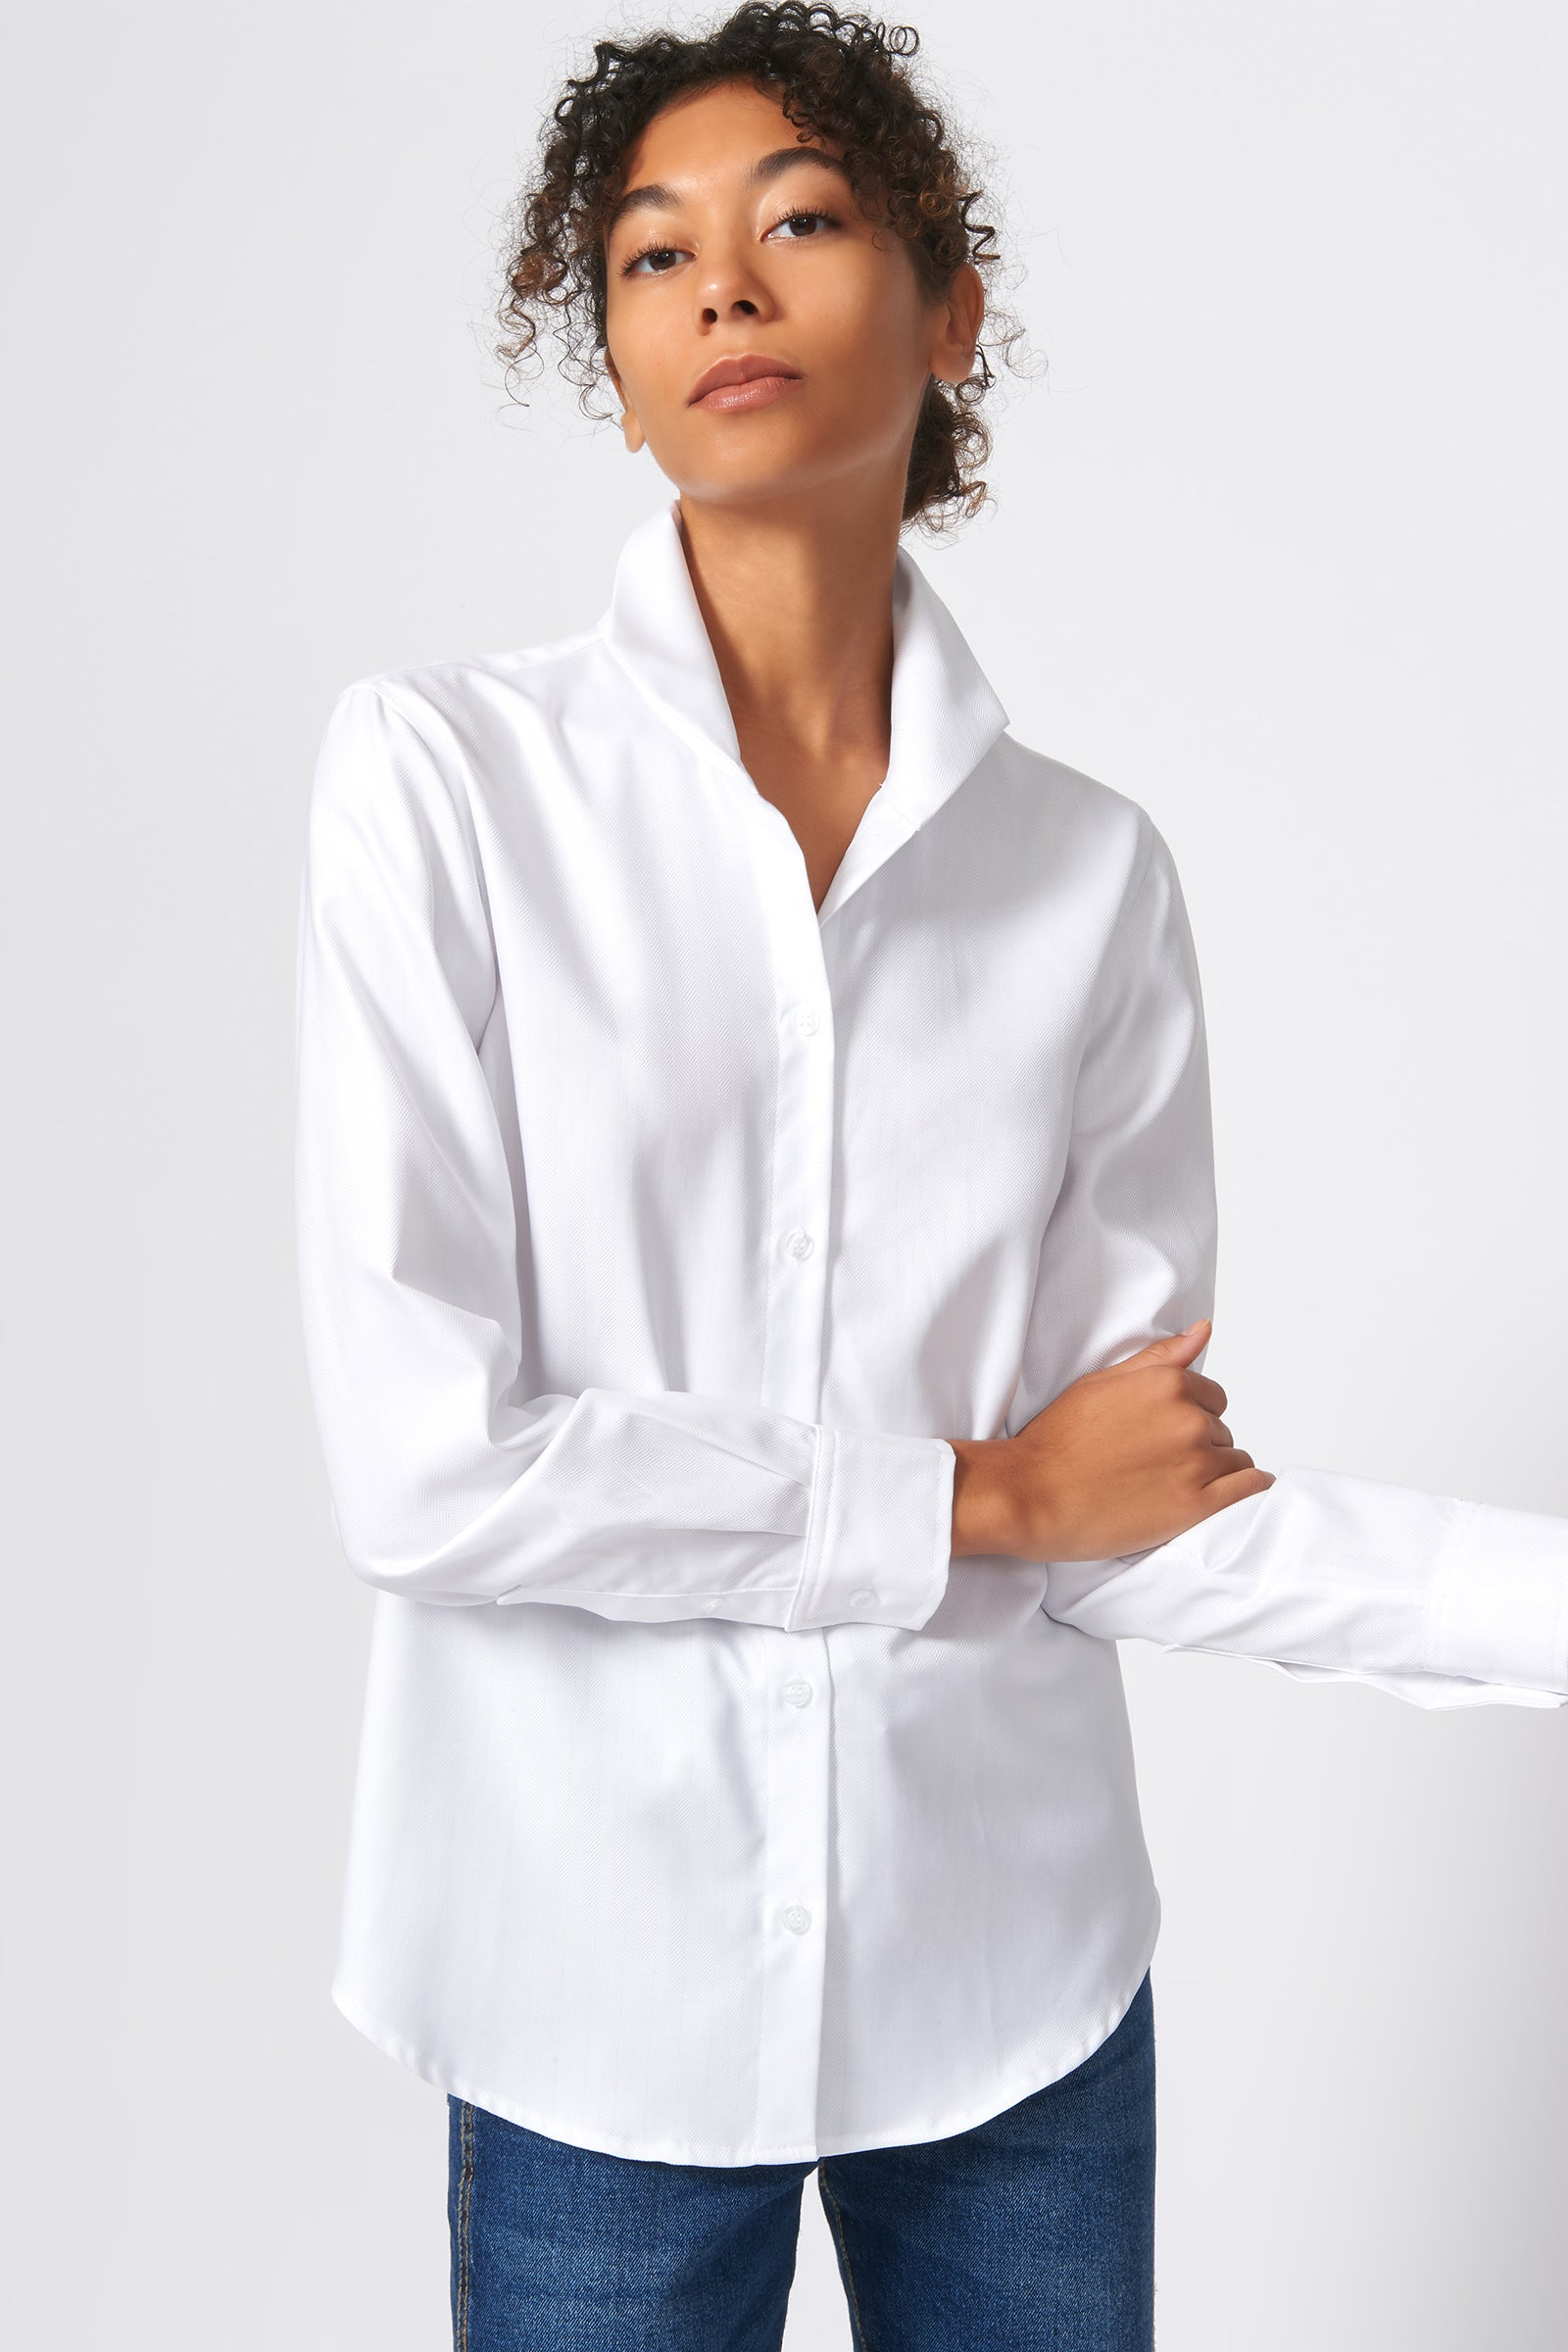 Kal Rieman Ginna Box Pleat Shirt in White Fine Herringbone on Model Front View